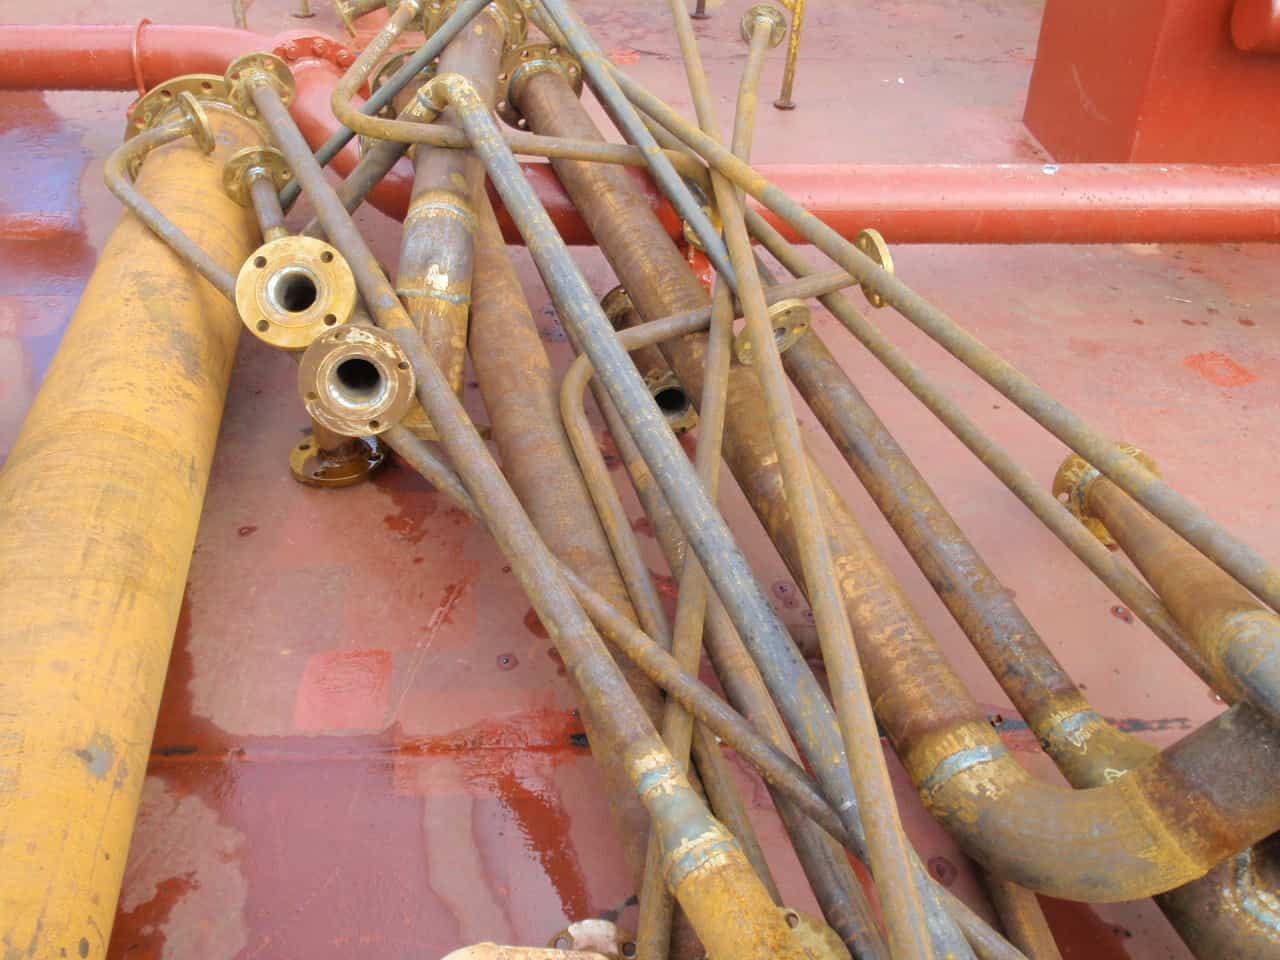 bundle of heavily rusted pipes on red floor